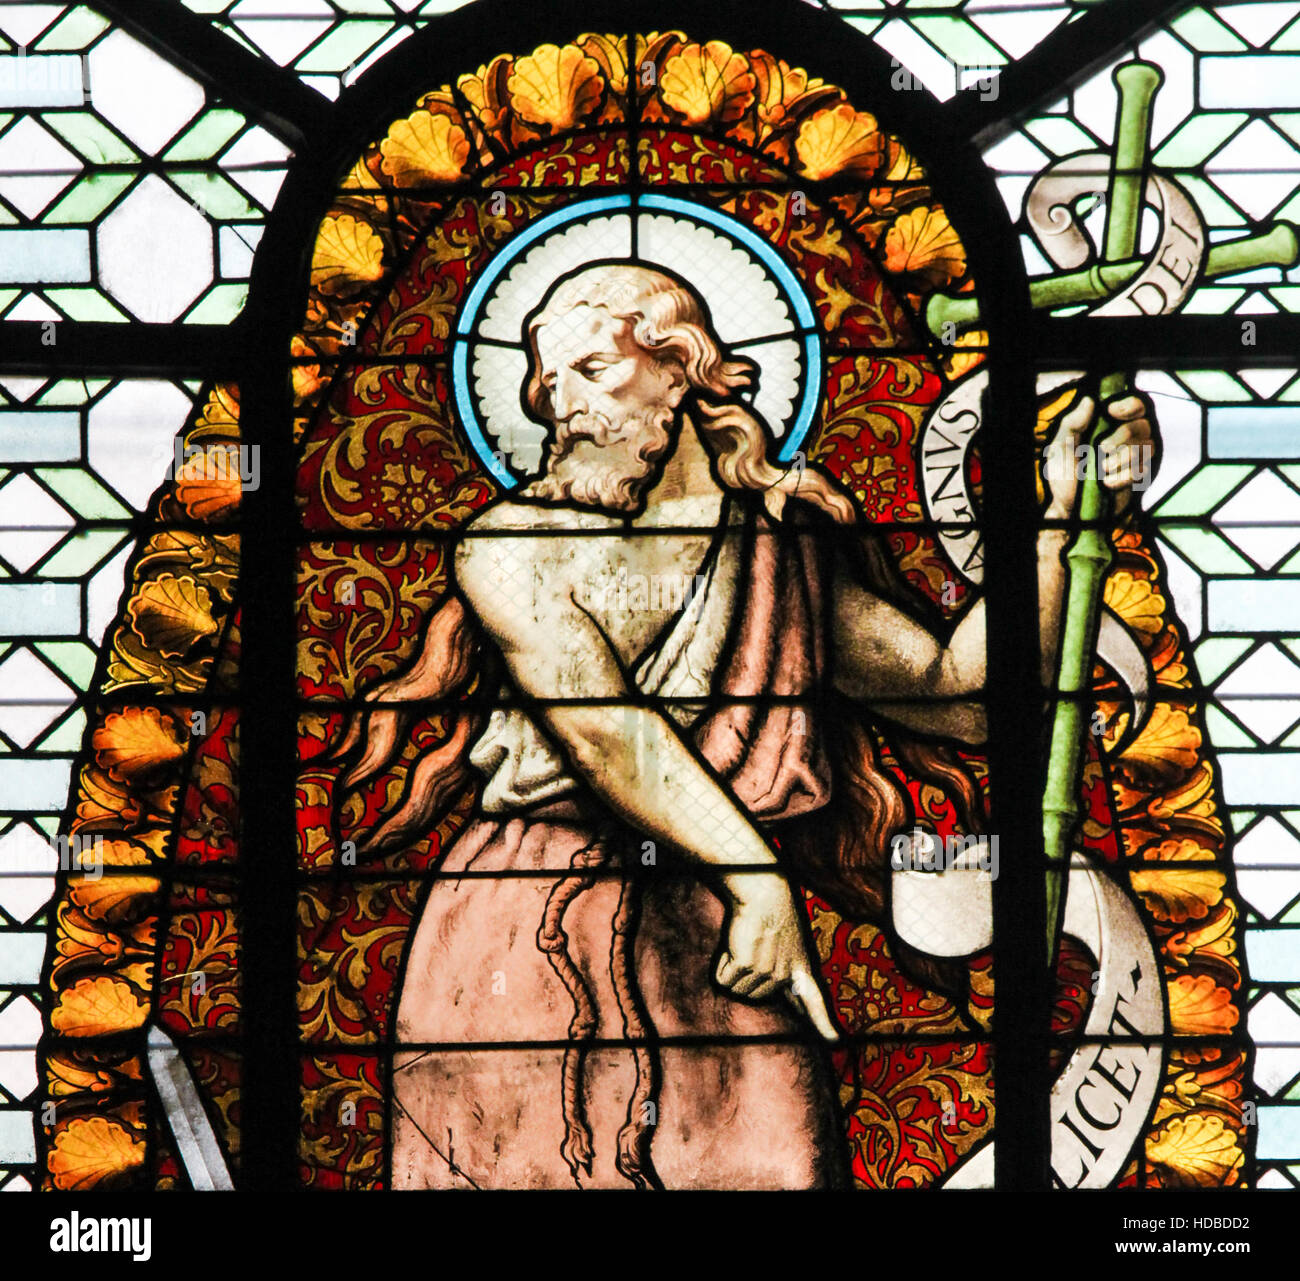 Stained Glass in the Church of Sainte Sulpice, Paris, depicting Saint John the Baptist. - Stock Image